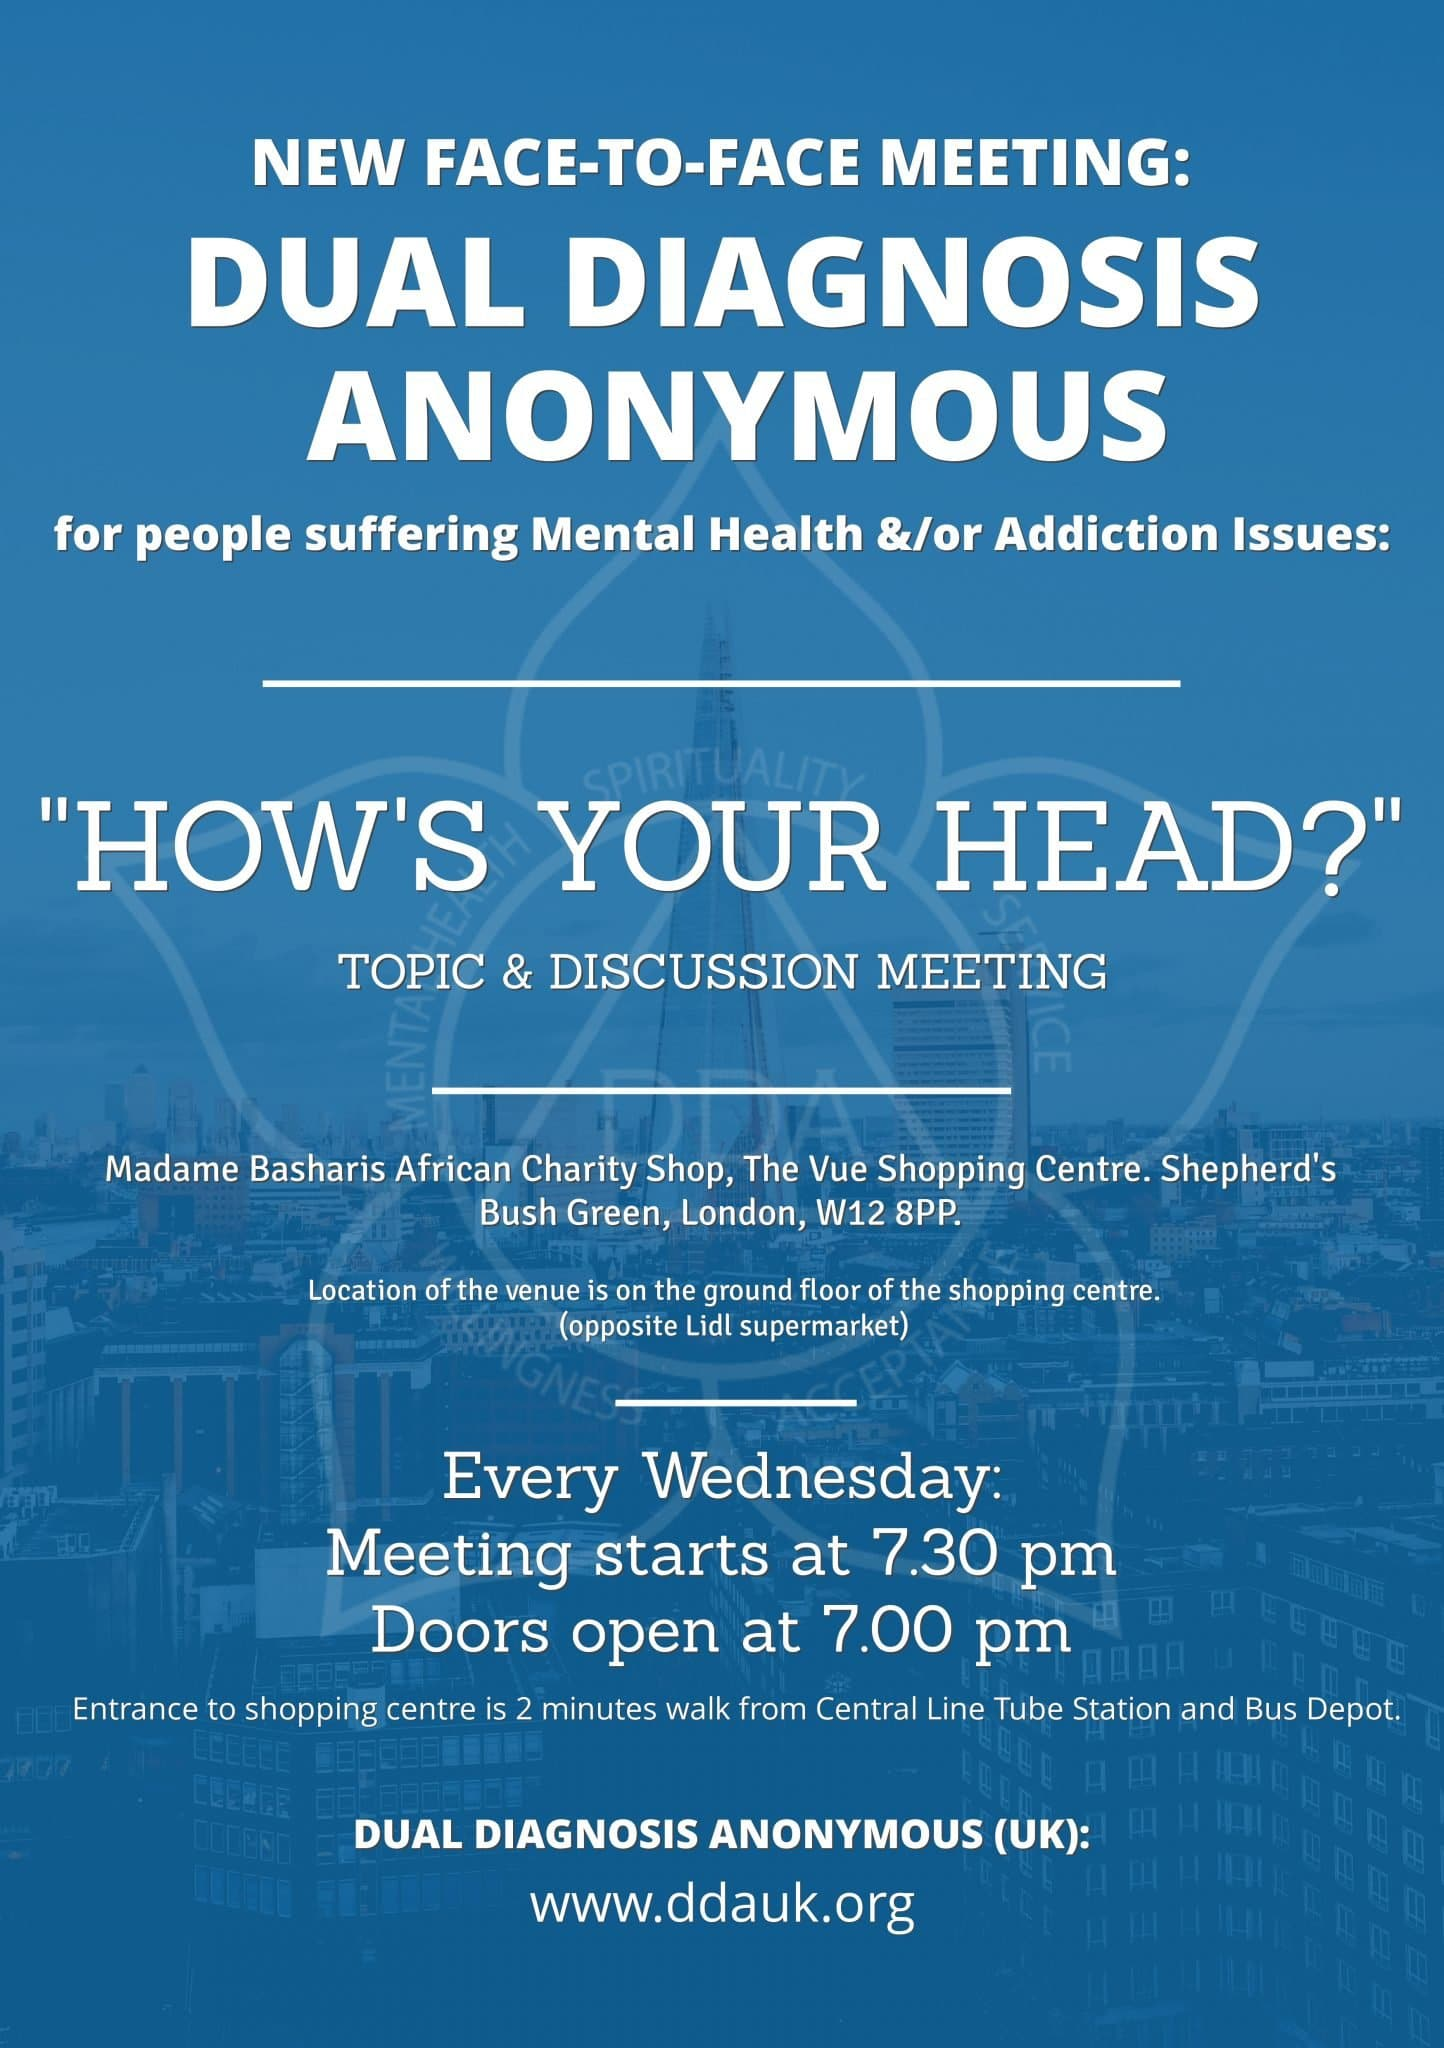 How's Your Head? DDA Face-to-Face Meeting (London)